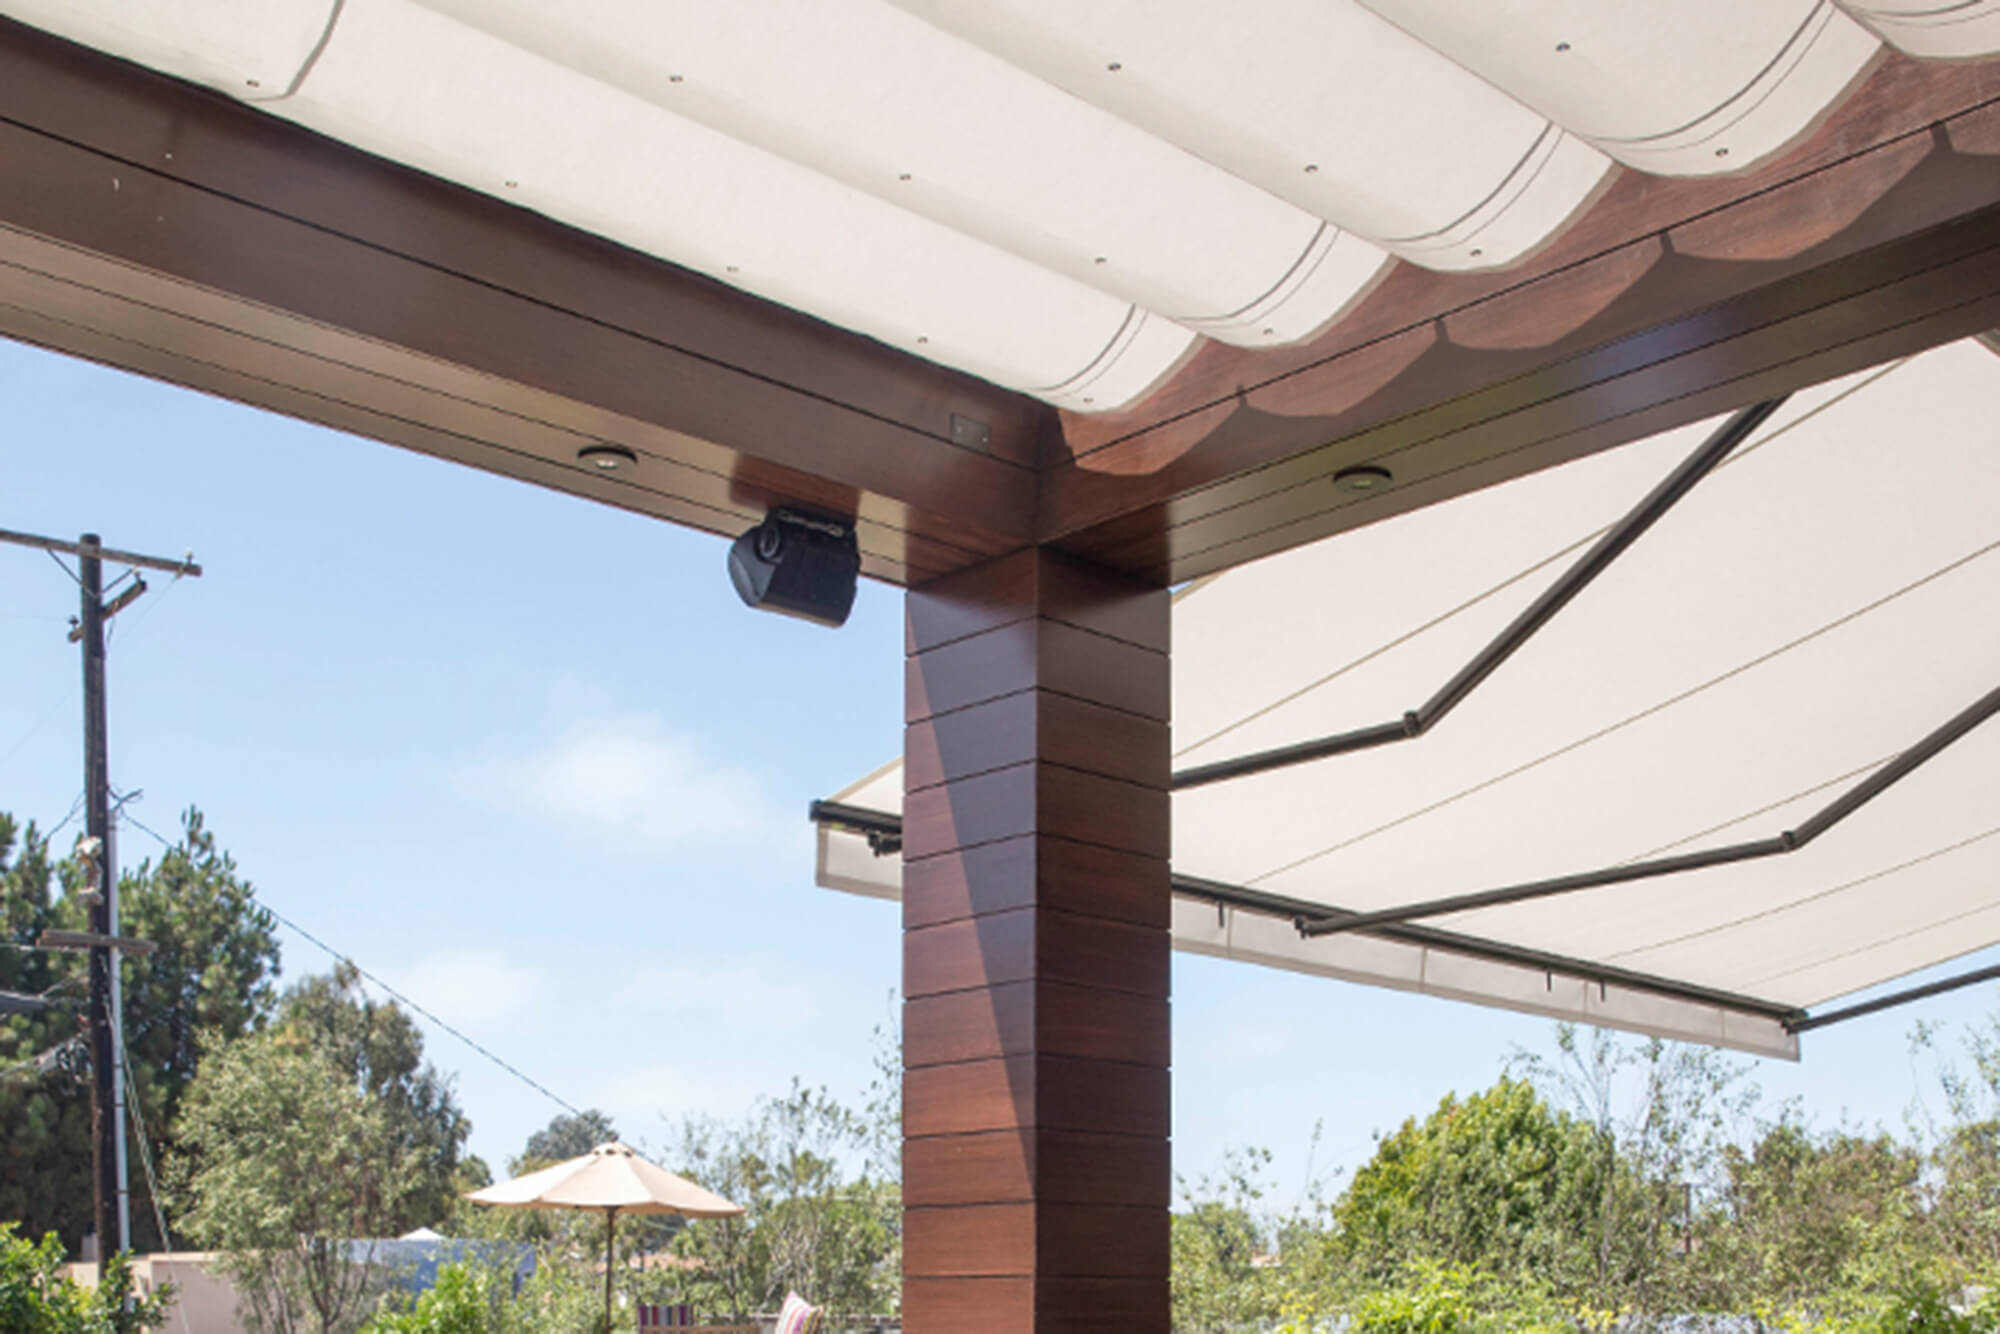 A patio is shaded by a retractable awning and pergoal both made using Silver Sunbrella shade fabric